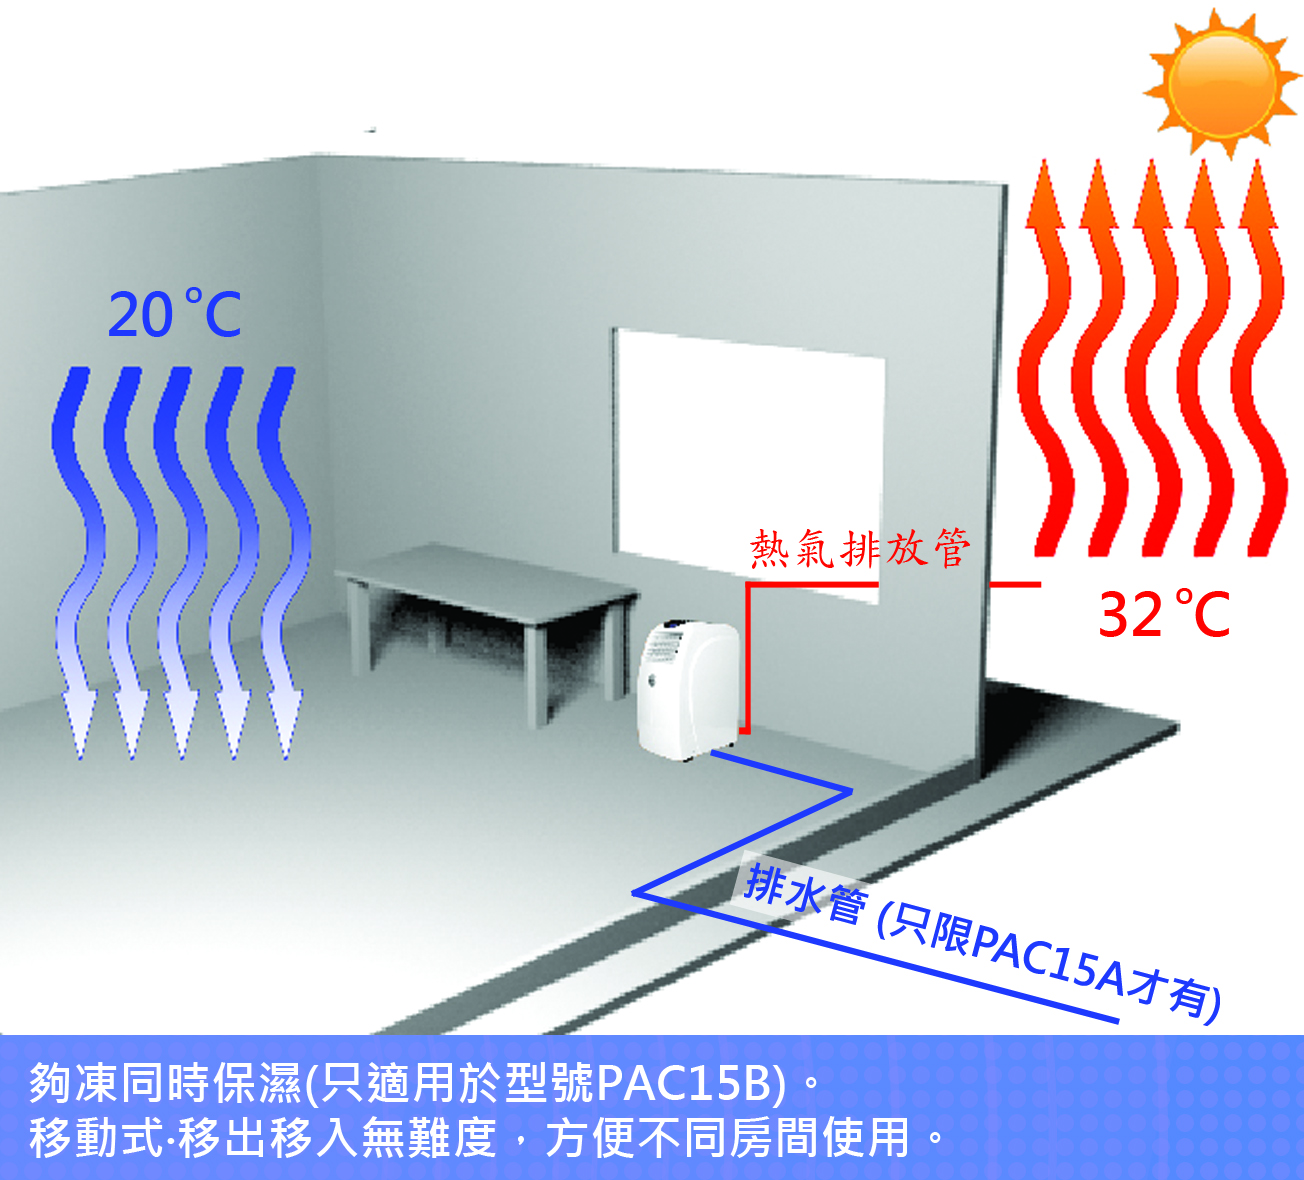 Portable Air Conditioner_Cooling Principle